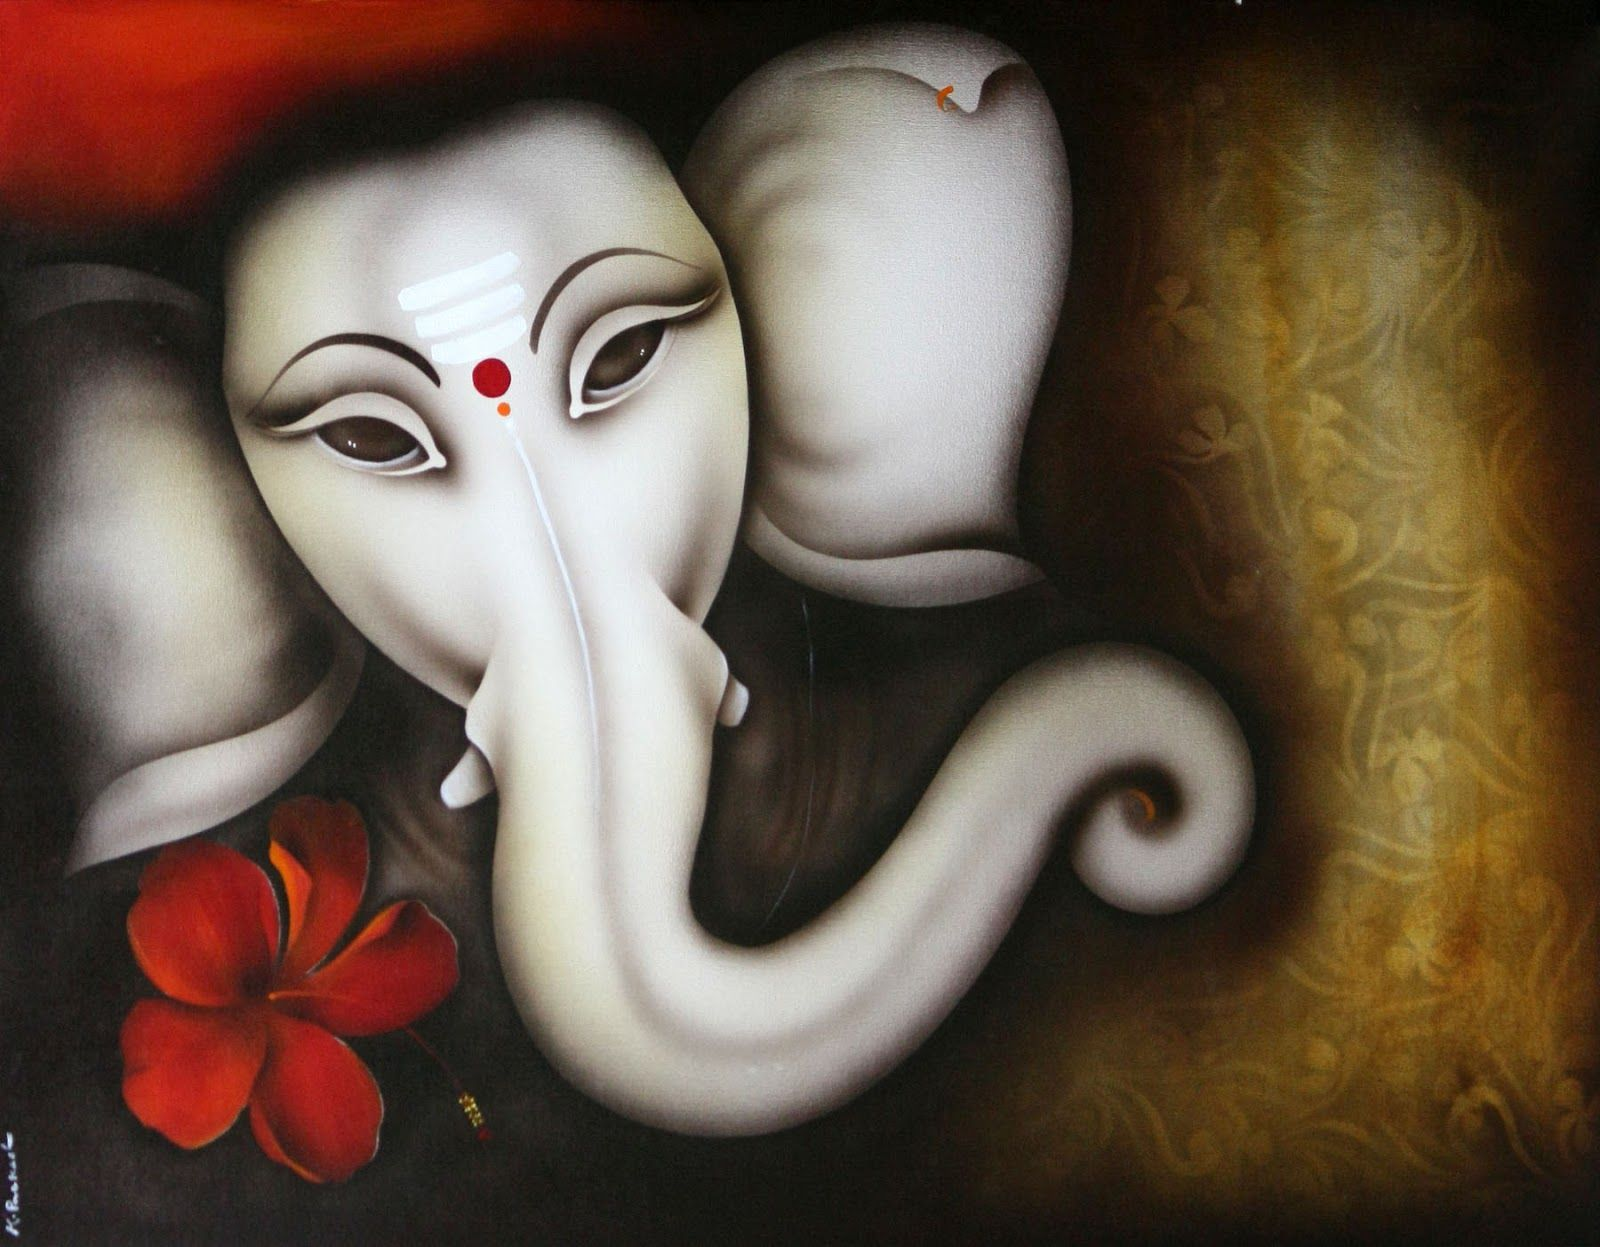 essay on lord ganesha गणेश चतुर्थी उत्सव पर निबंध (गणेश चतुर्थी एस्से) find here some essays on ganesh chaturthi in hindi language for students in 100, 150, 200, 250, 300, and 400 words.